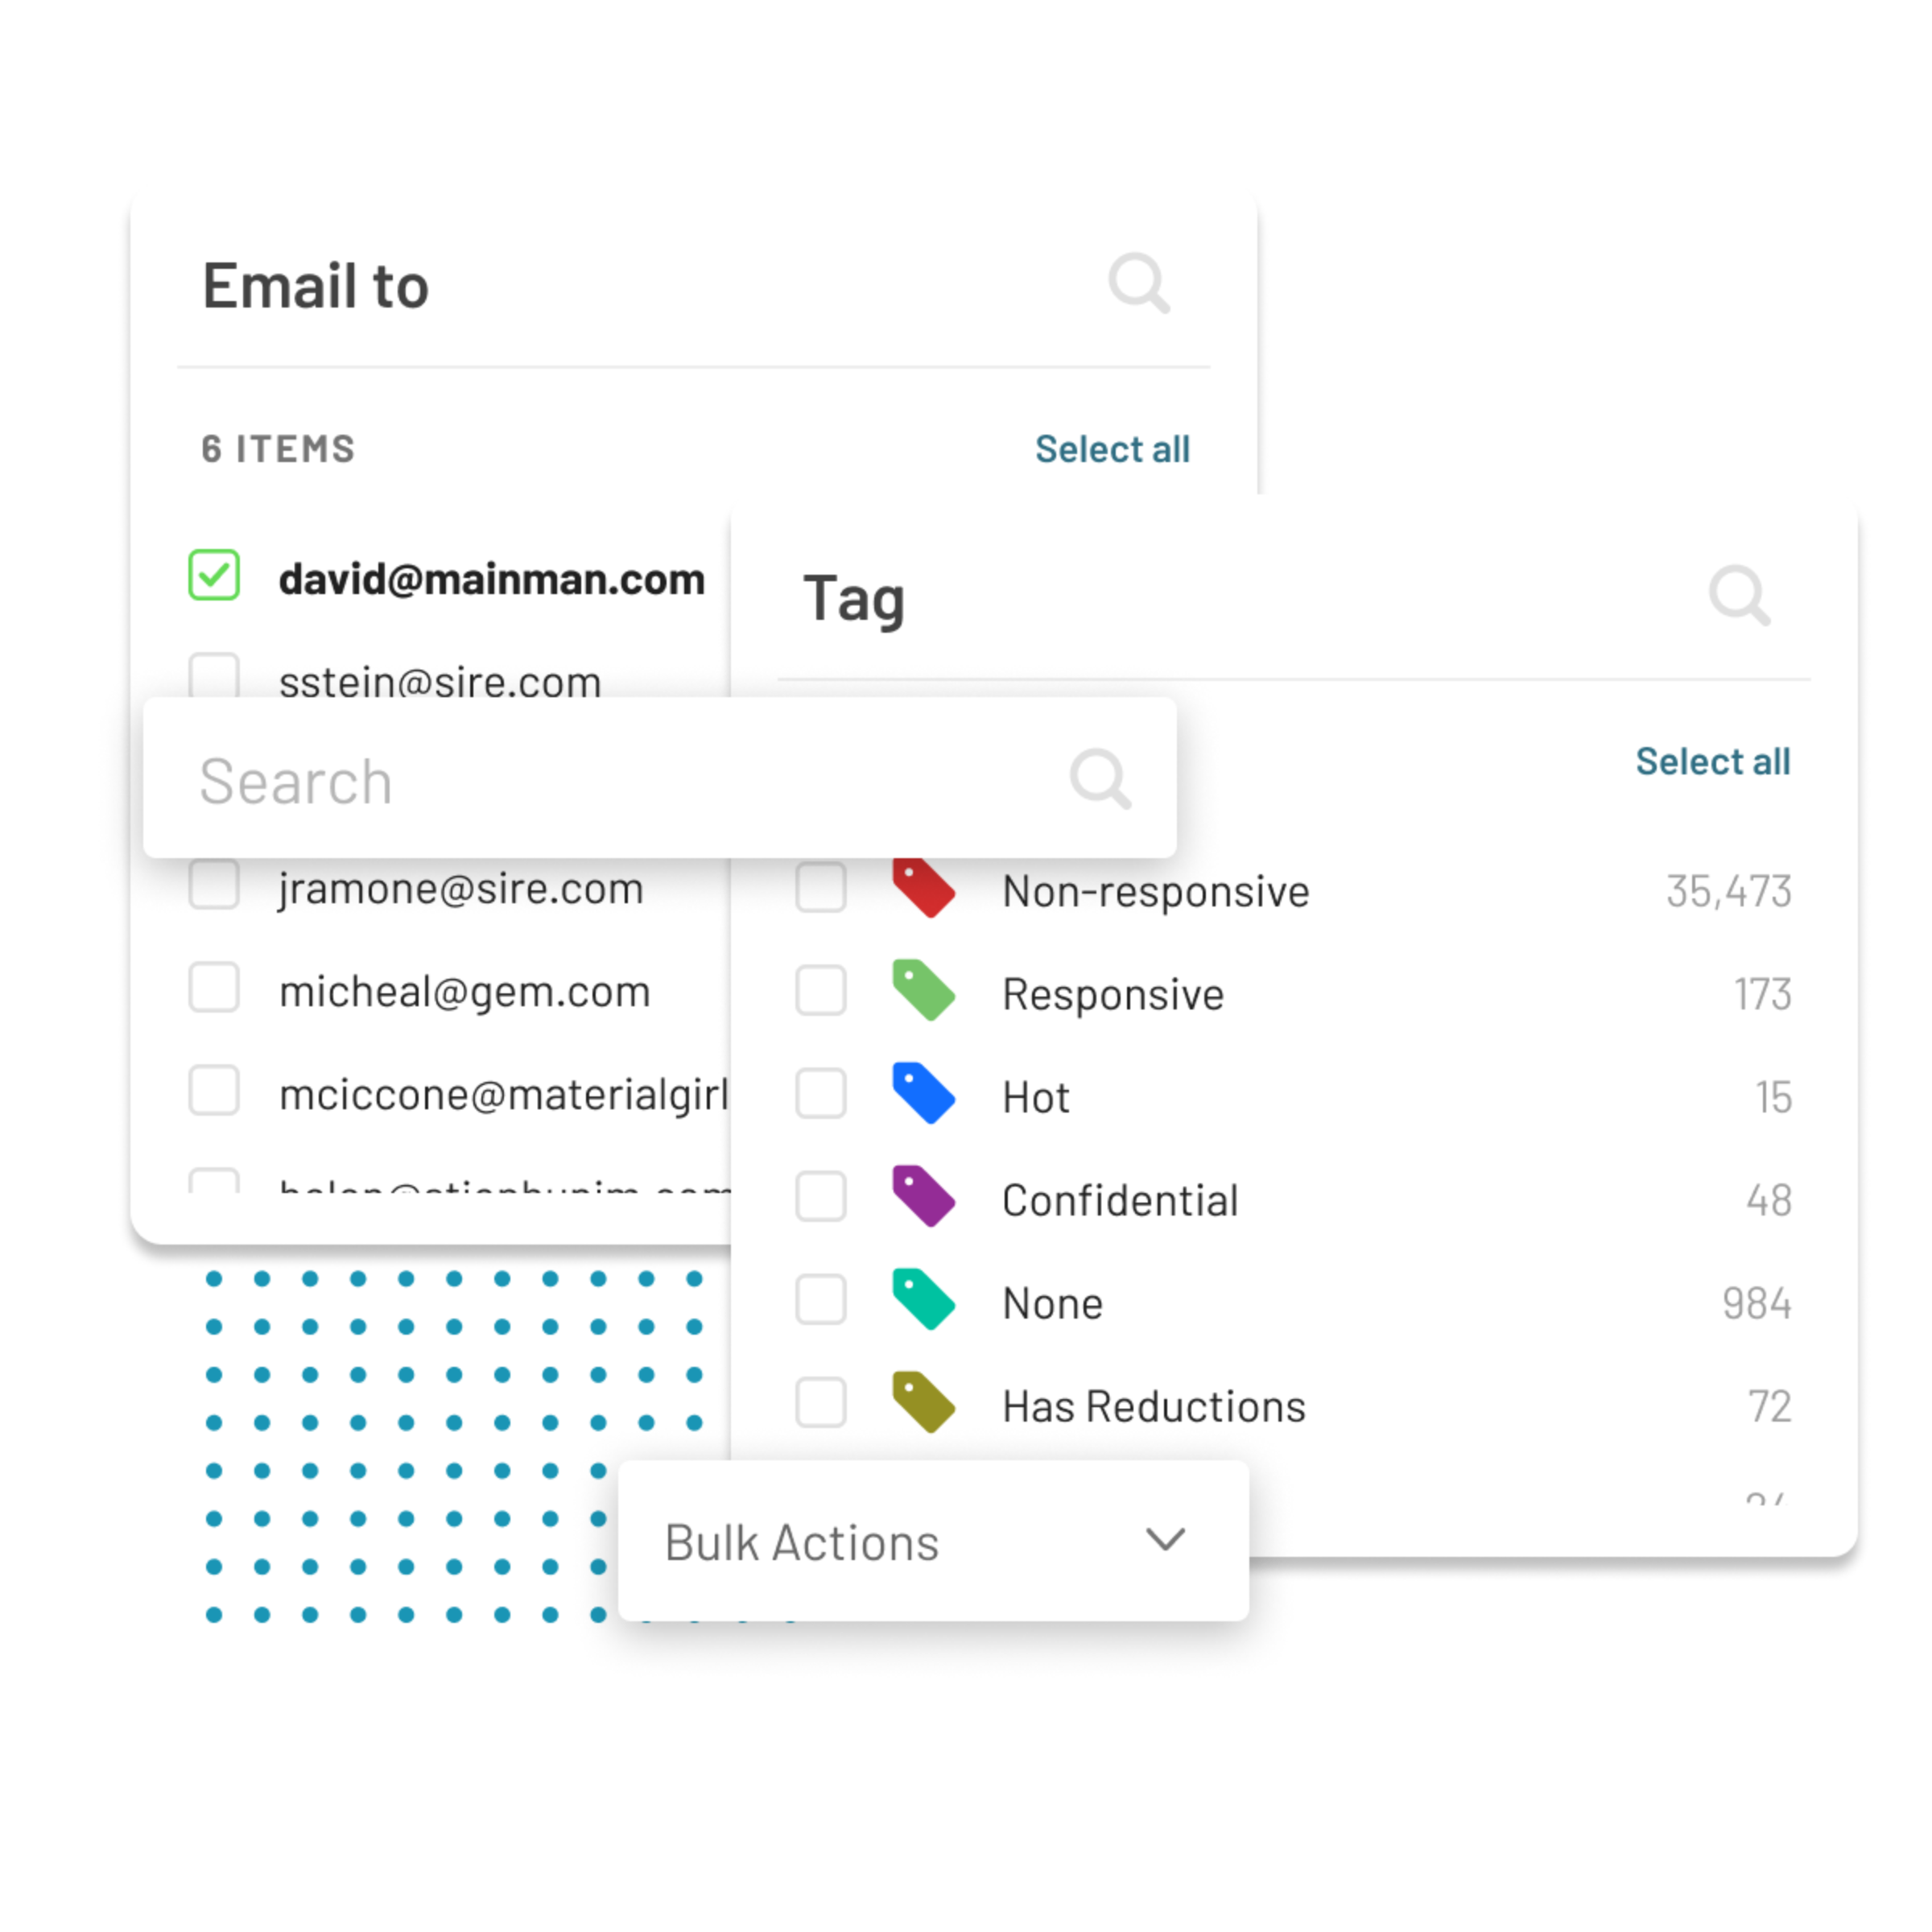 Logikcull's Culling Intelligence lets you drill into your data with ease. Filter by emails, tags, date, doc type, keywords, and more.